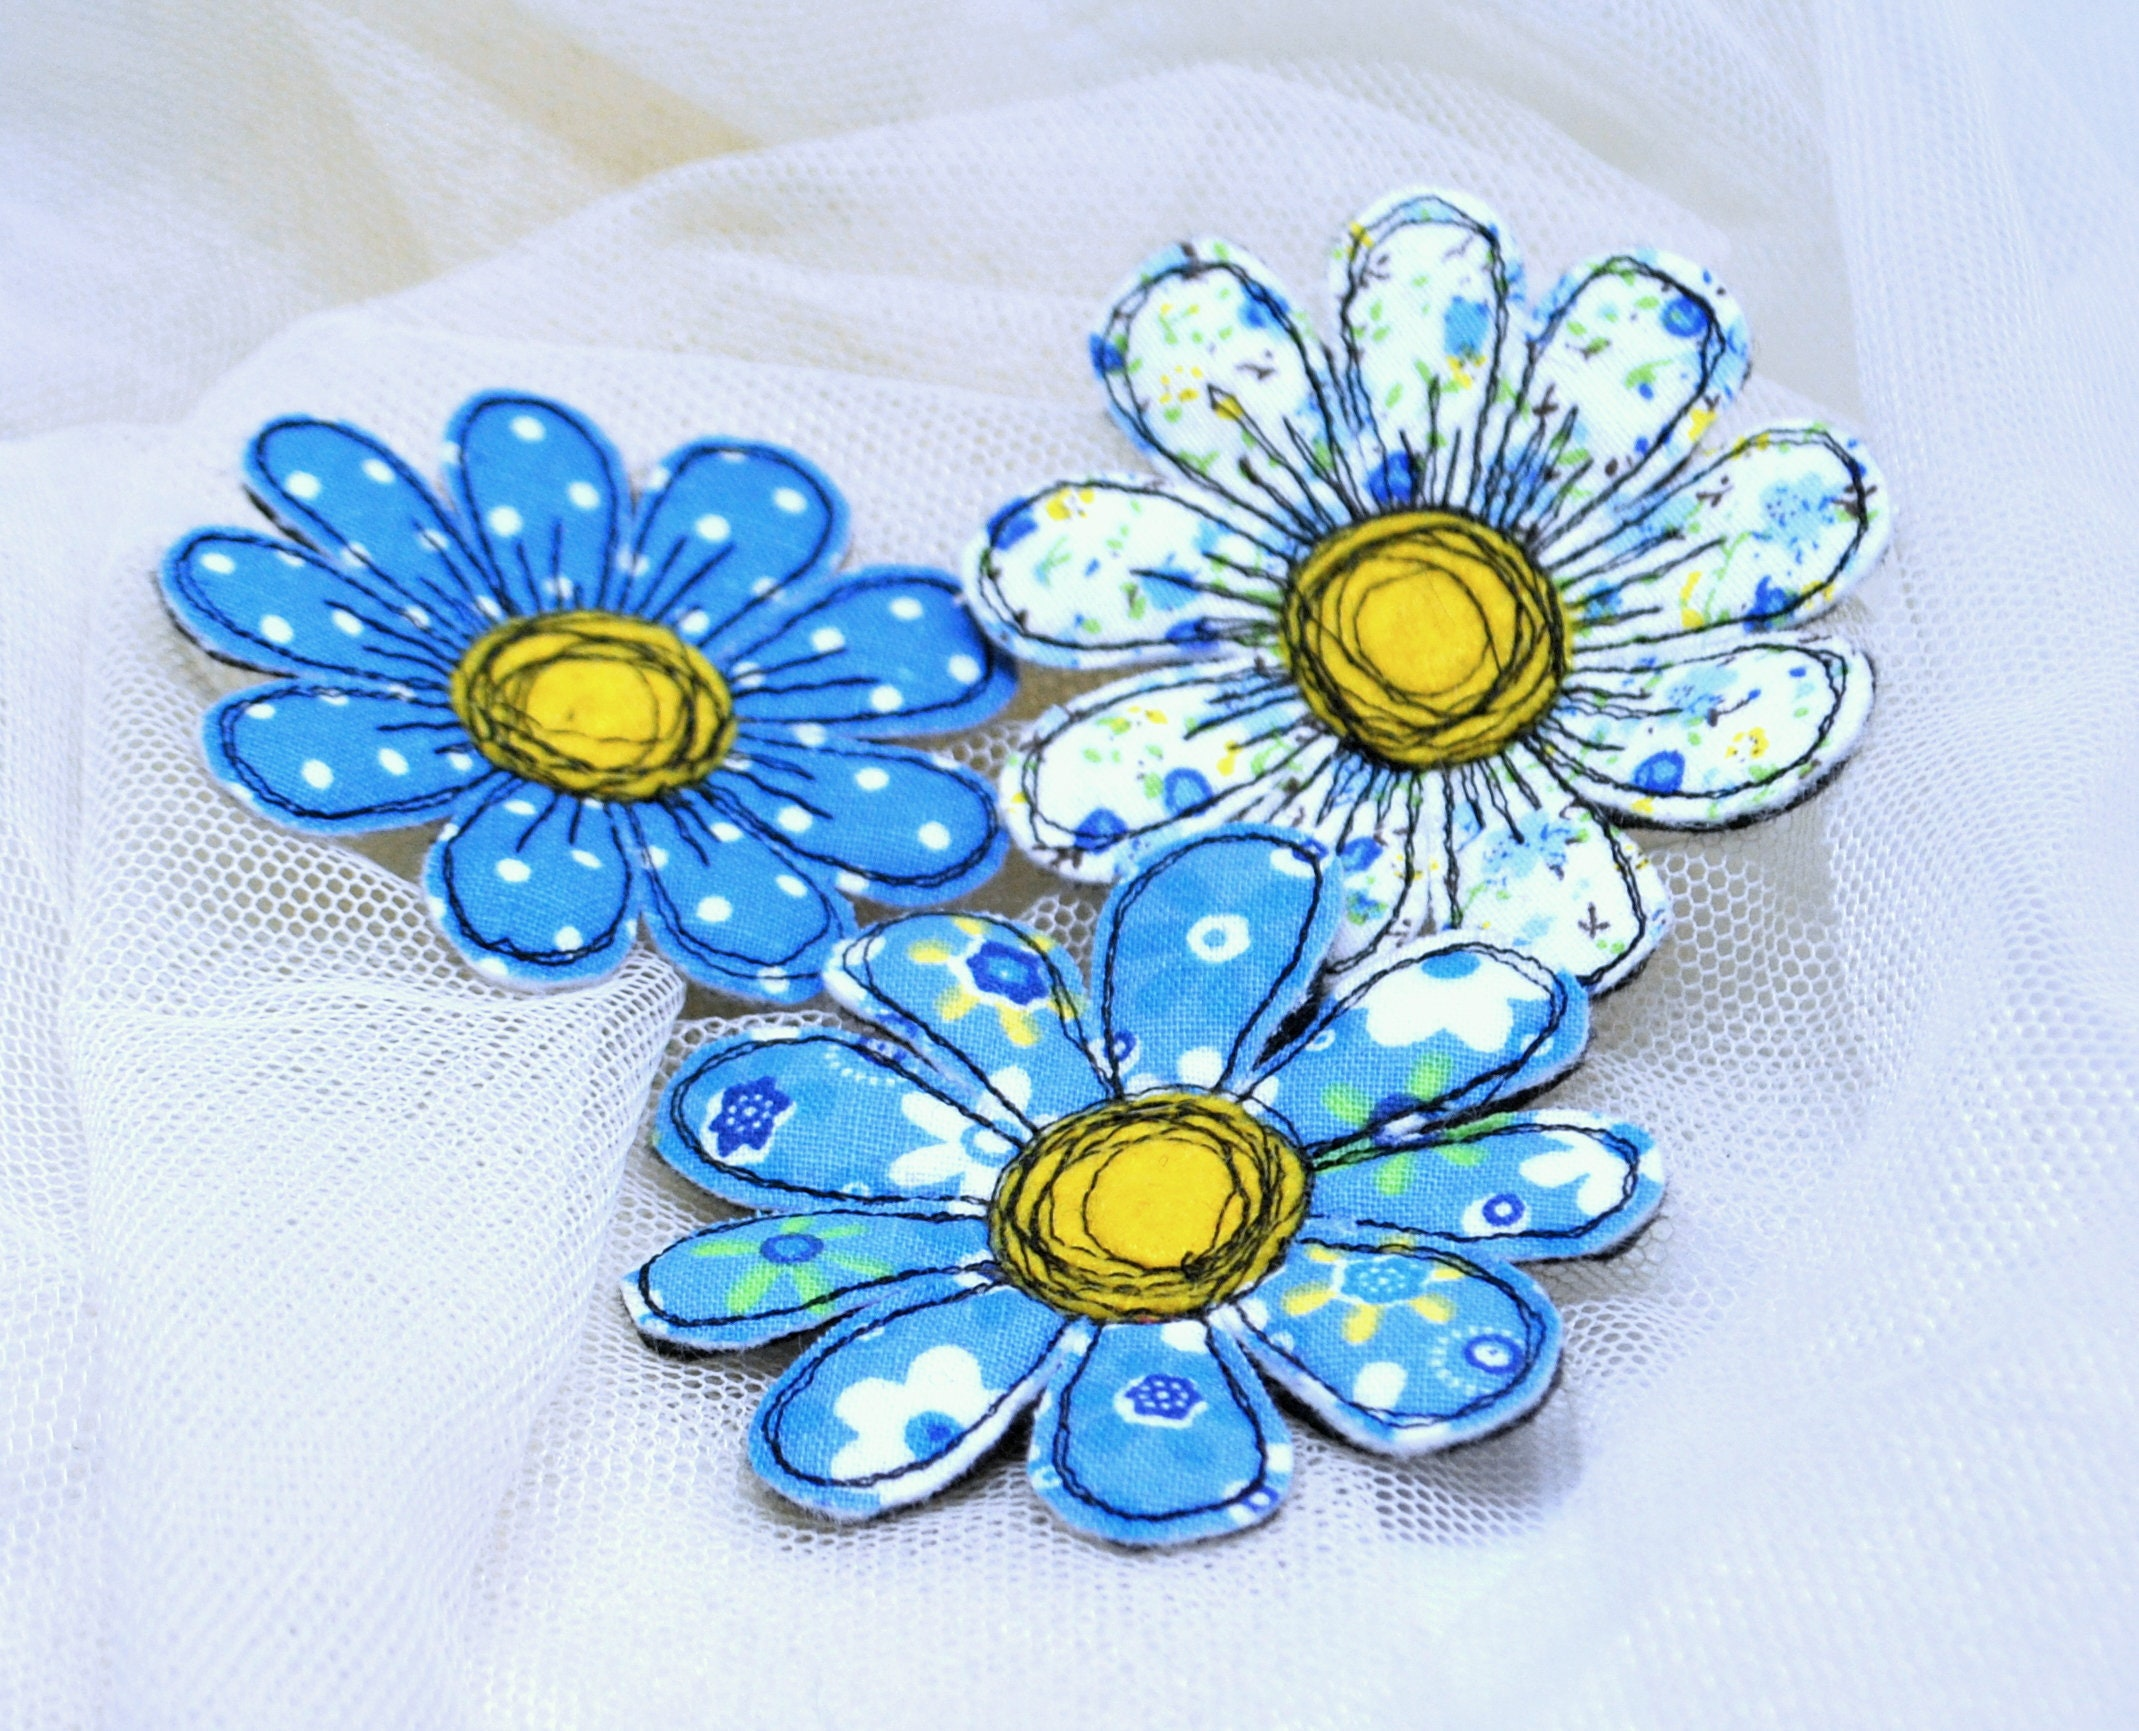 Flowers calico Fabric daisy brooch Set 3in1 Textile art single